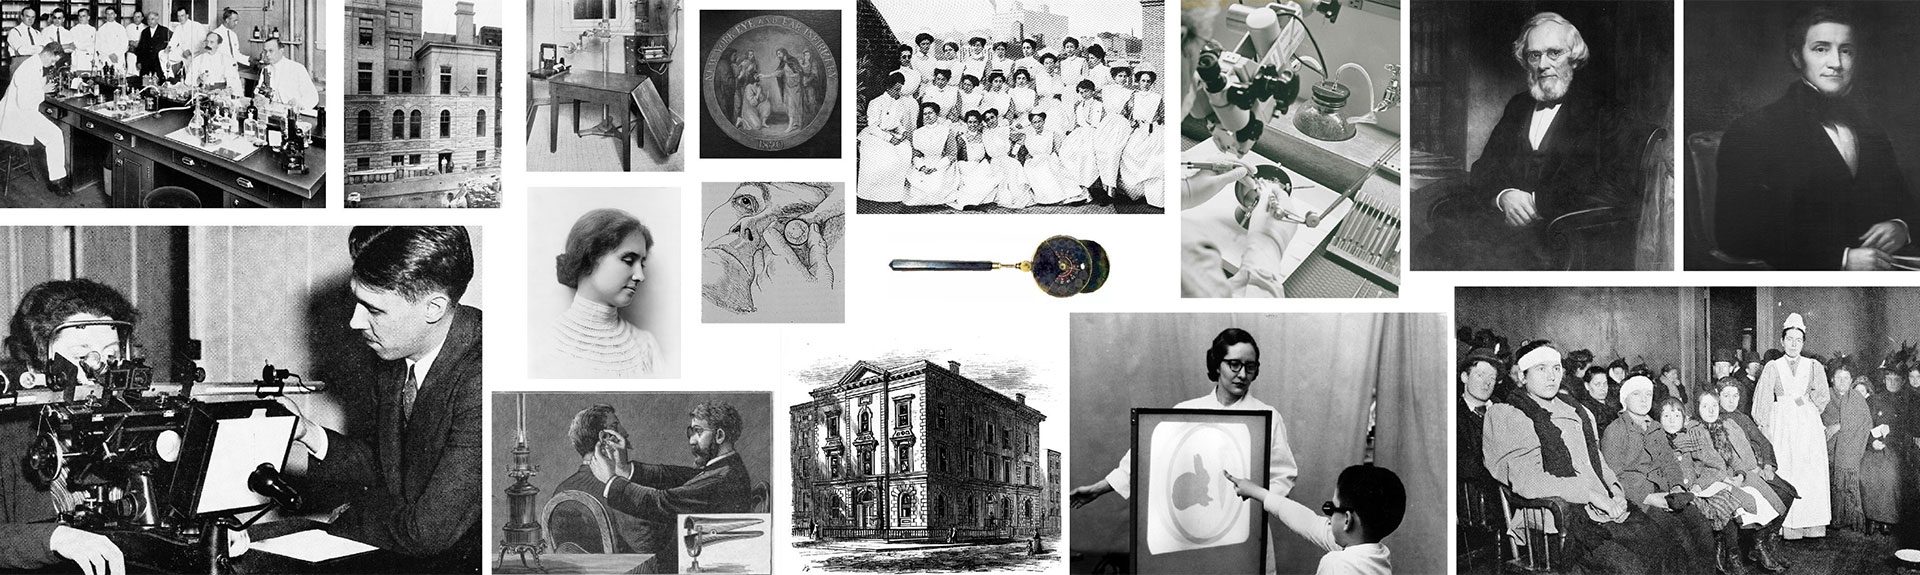 Collage of historical photographs